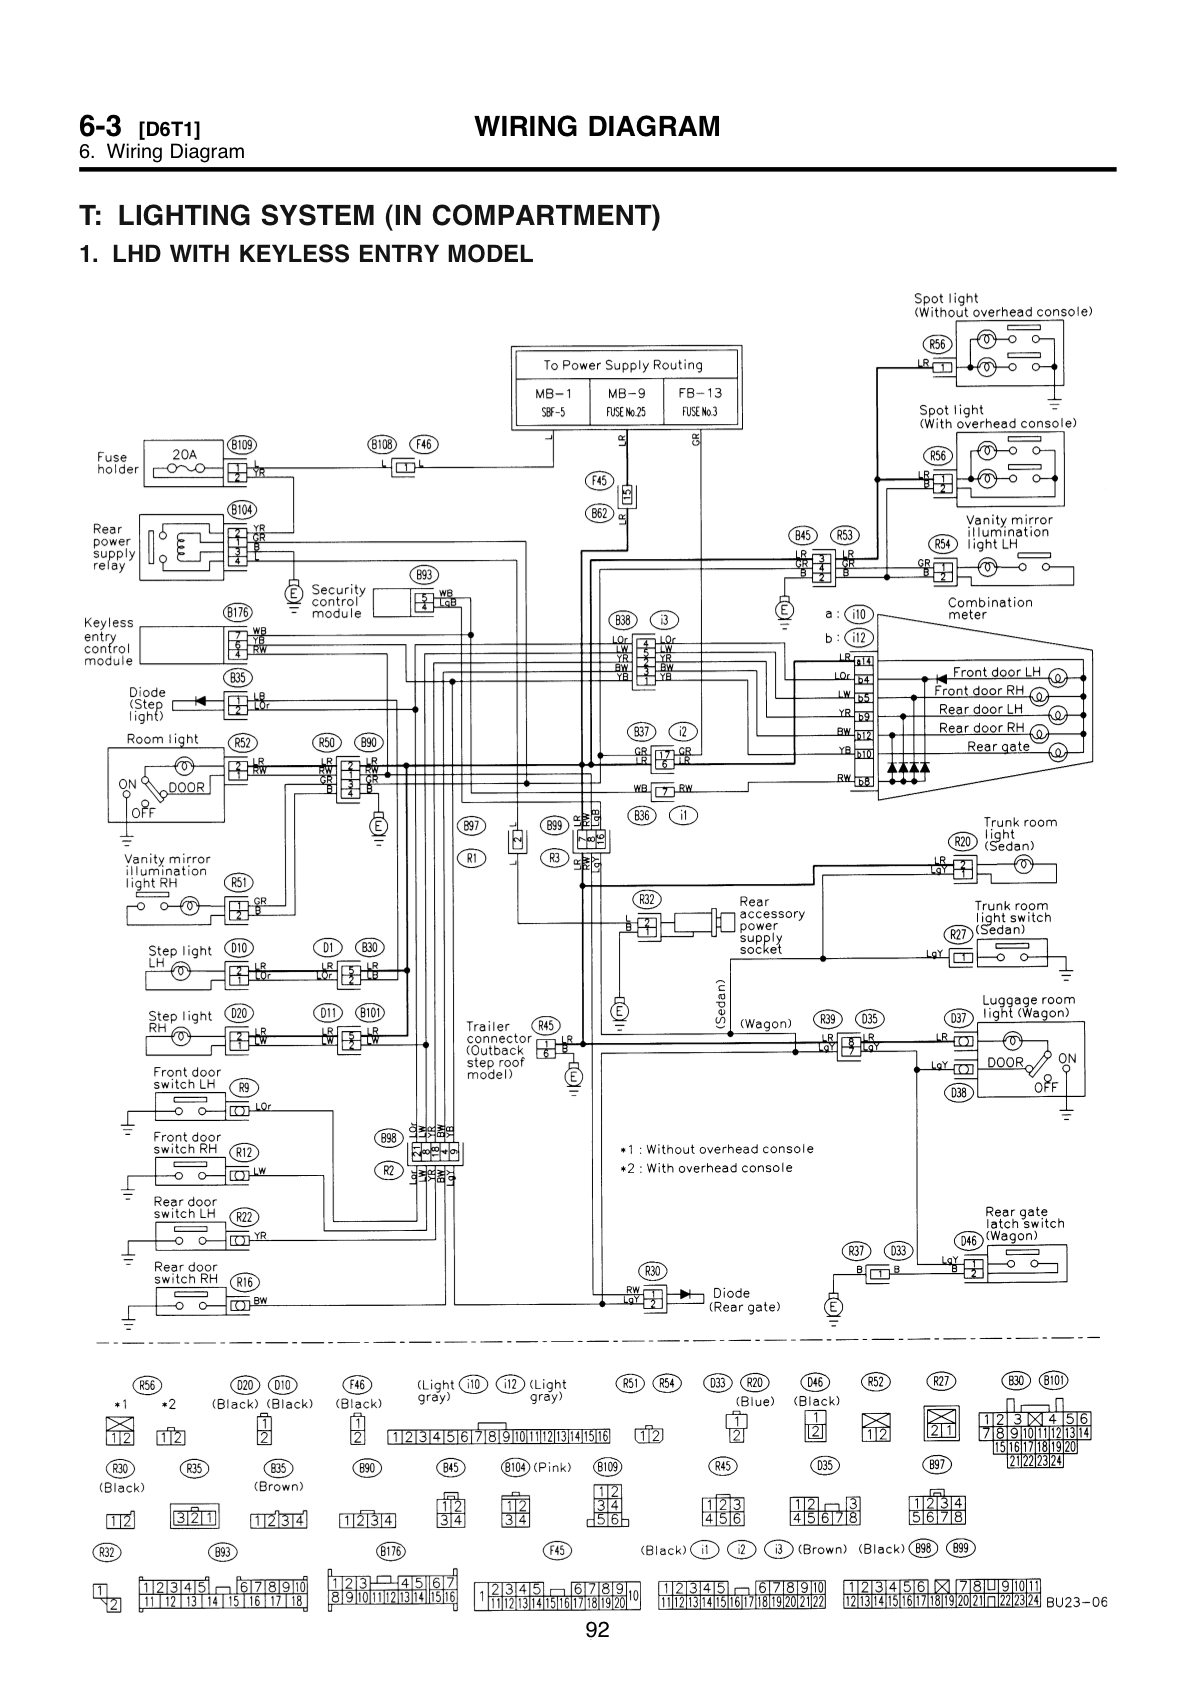 wiring_diagram1?resize\=840%2C1187 diagrams 554363 kramer single humbucker wiring diagram kramer kramer pacer wiring diagram at aneh.co